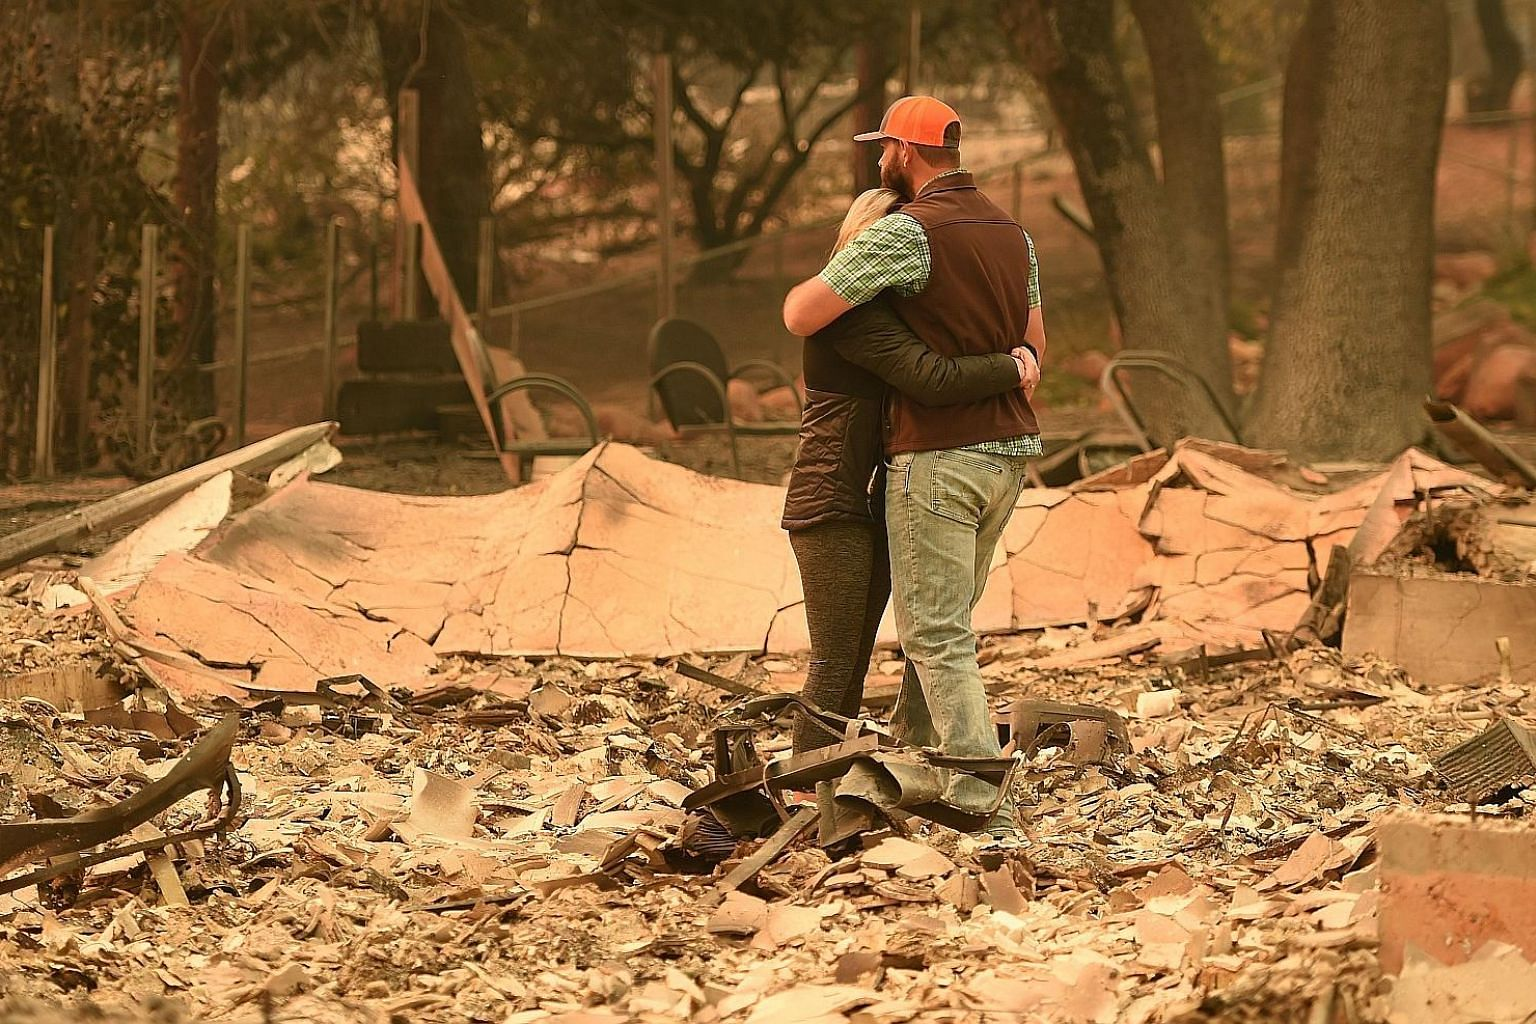 Mr and Mrs Chris Brown of the town of Paradise looking at the burnt remains of their house after wind-whipped flames tore through the region, leaving death and devastation in their wake.